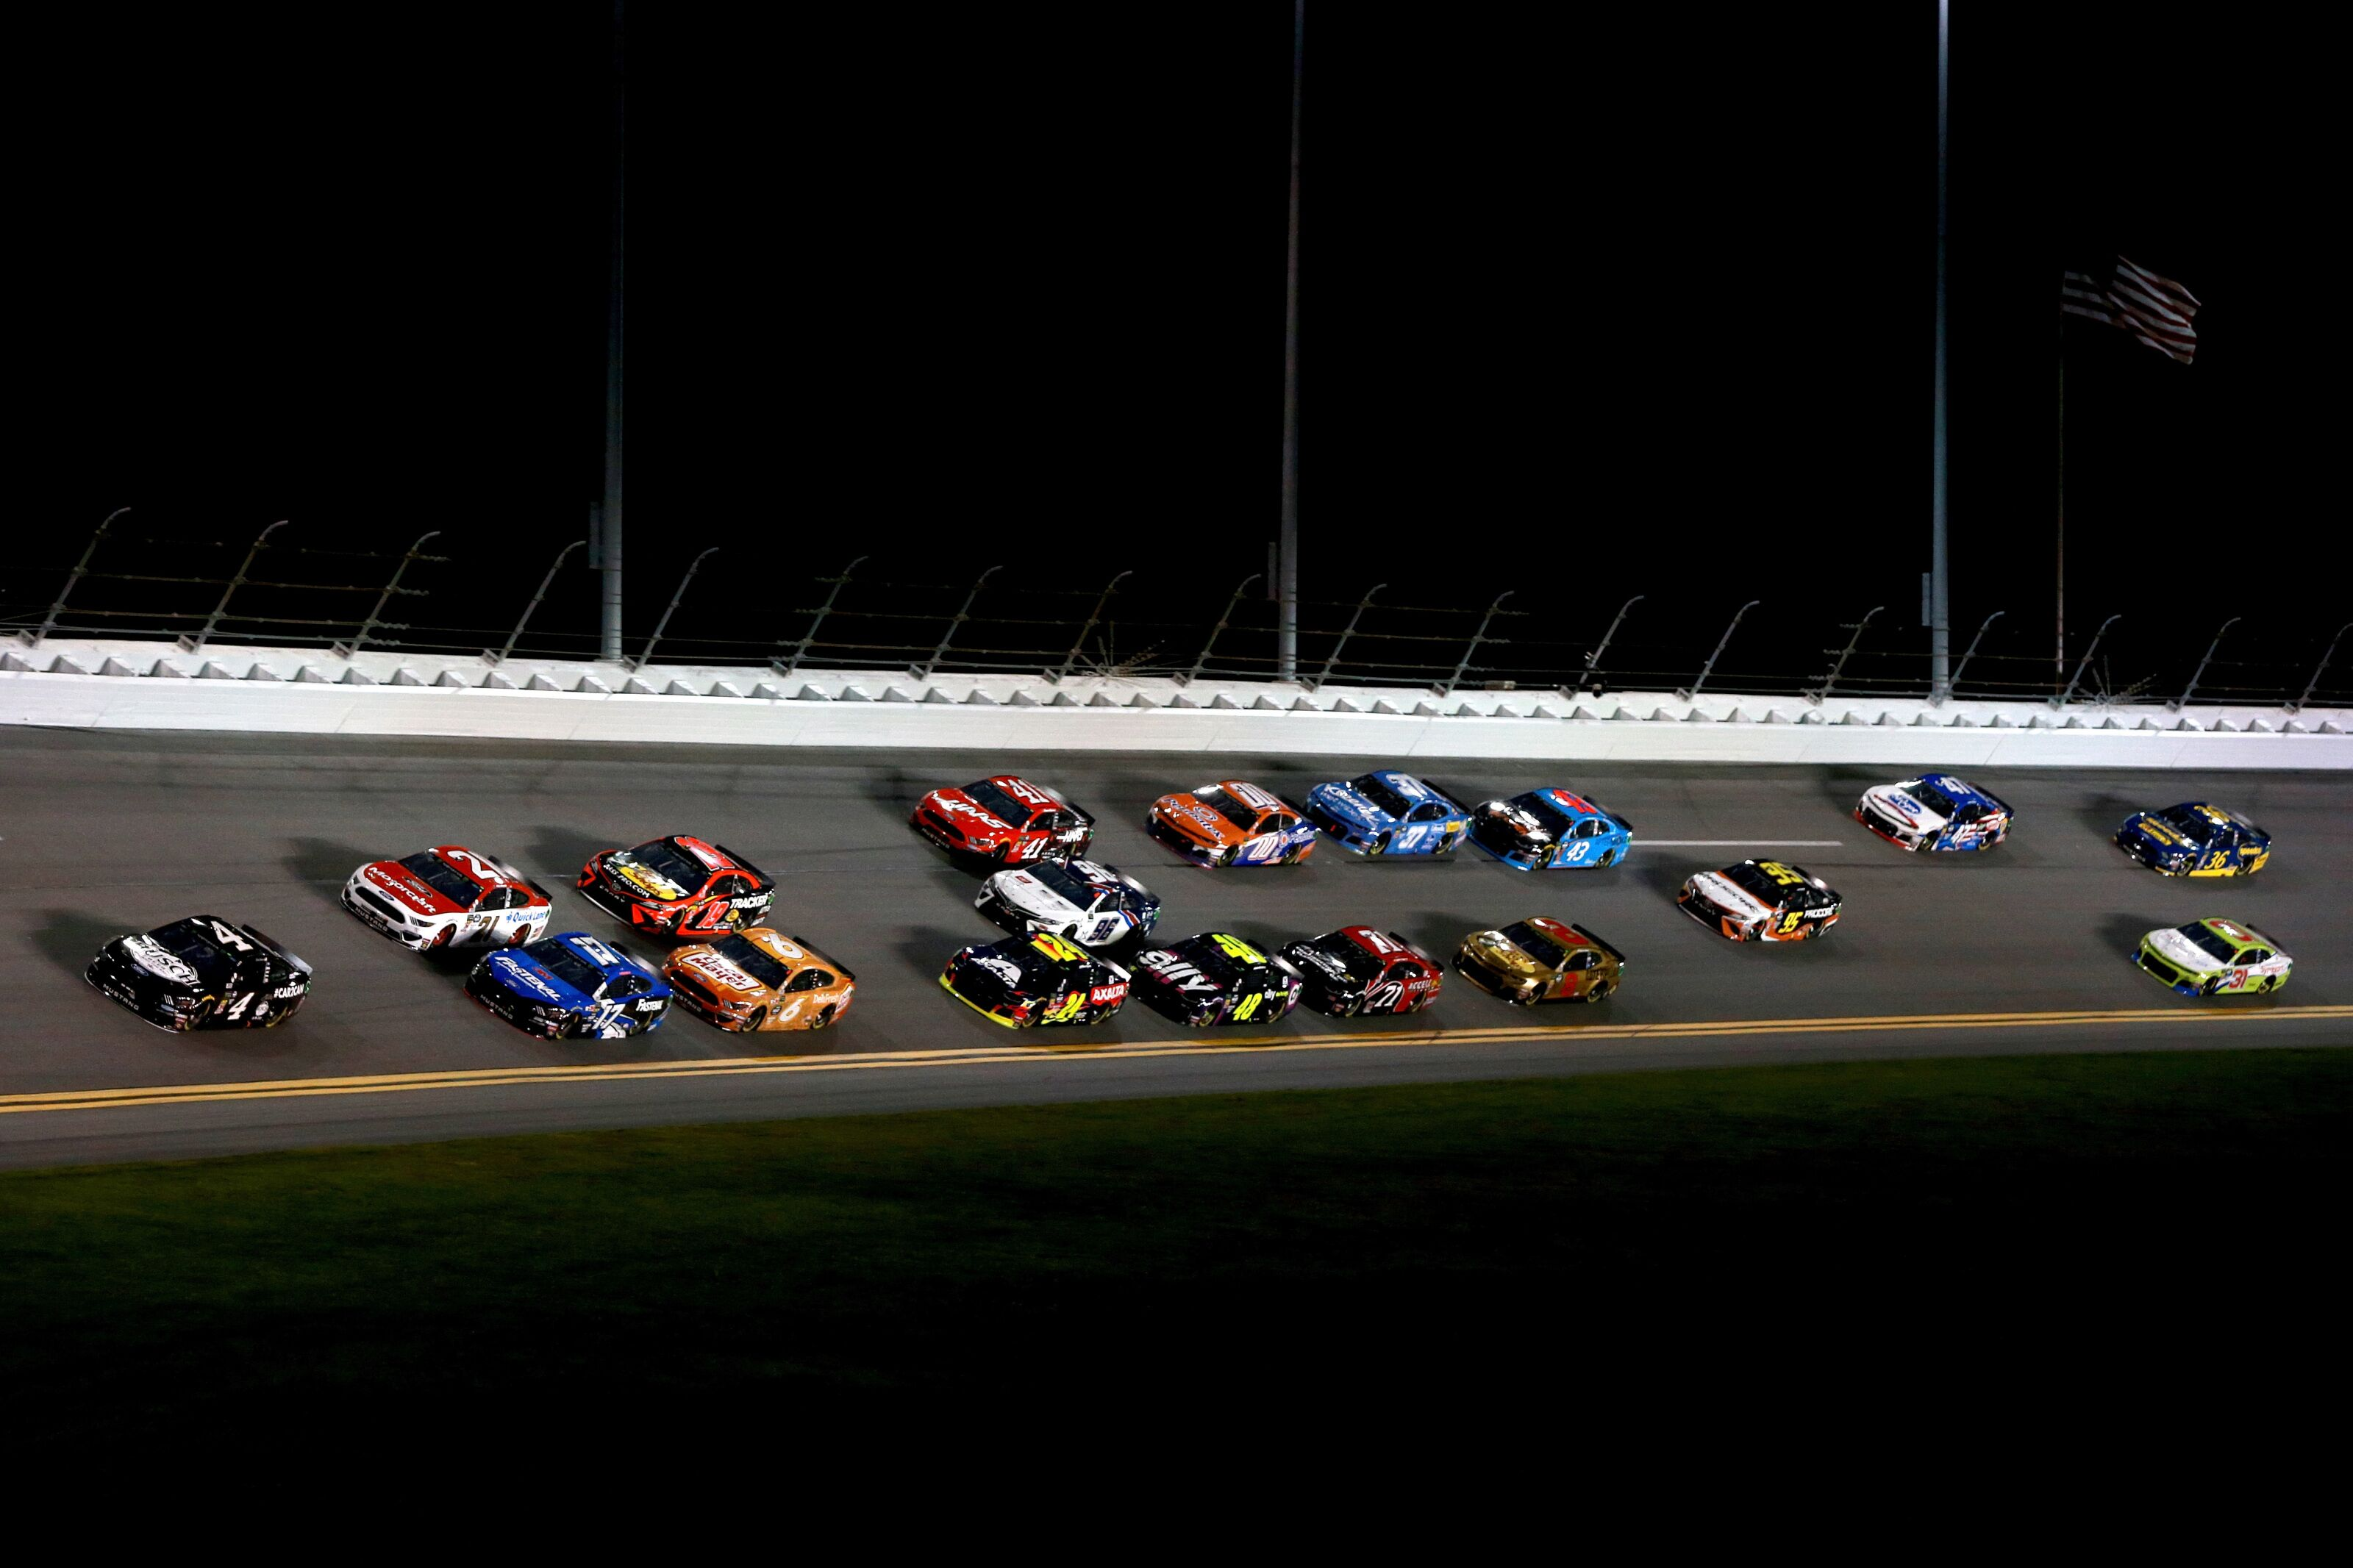 NASCAR: Notable omission from 2020 Daytona 500 entry list – Beyond the Flag